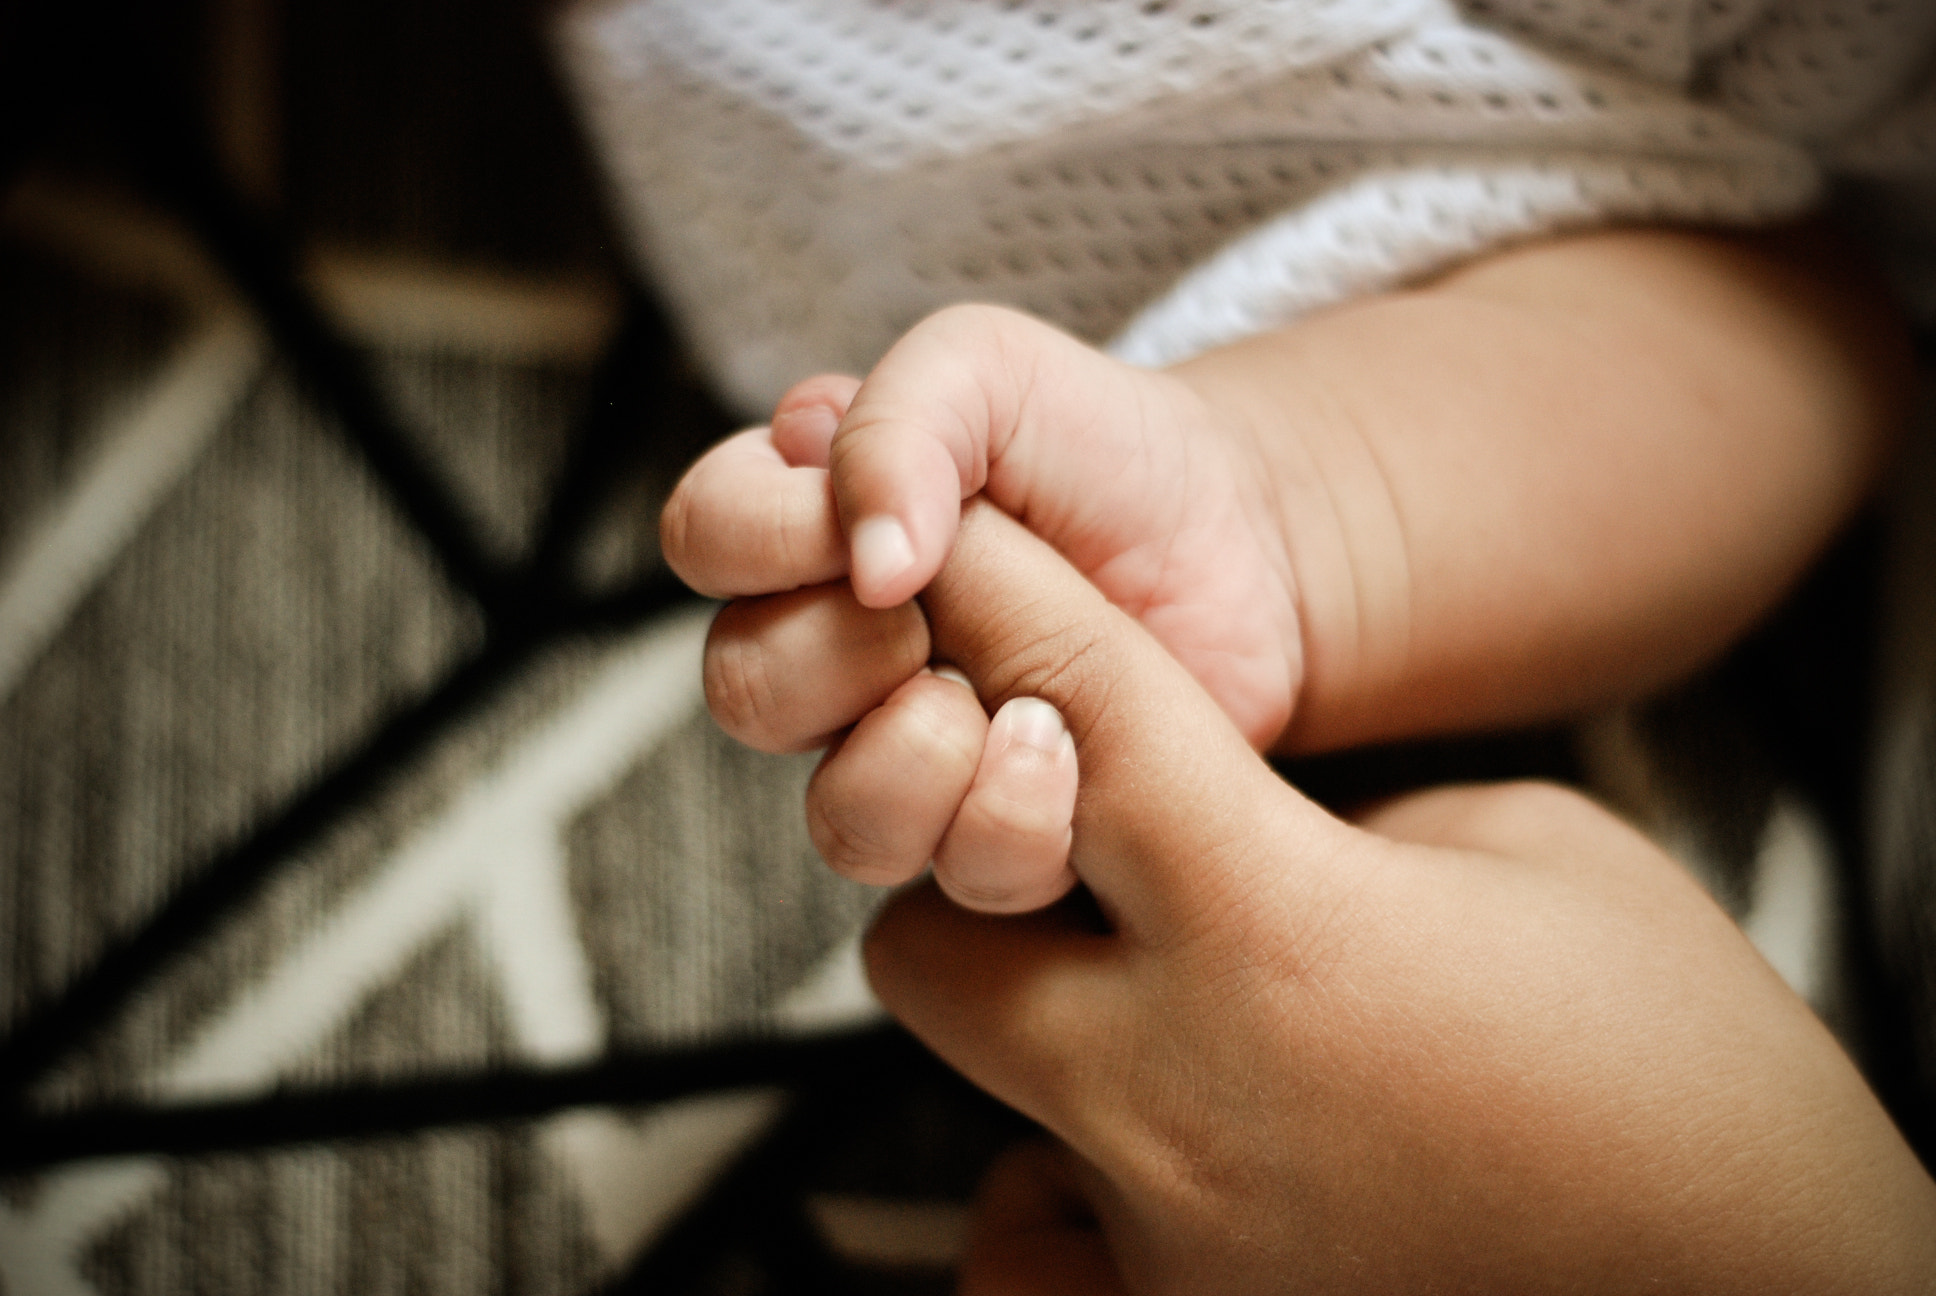 Photograph holding hand by Wiss Click on 500px